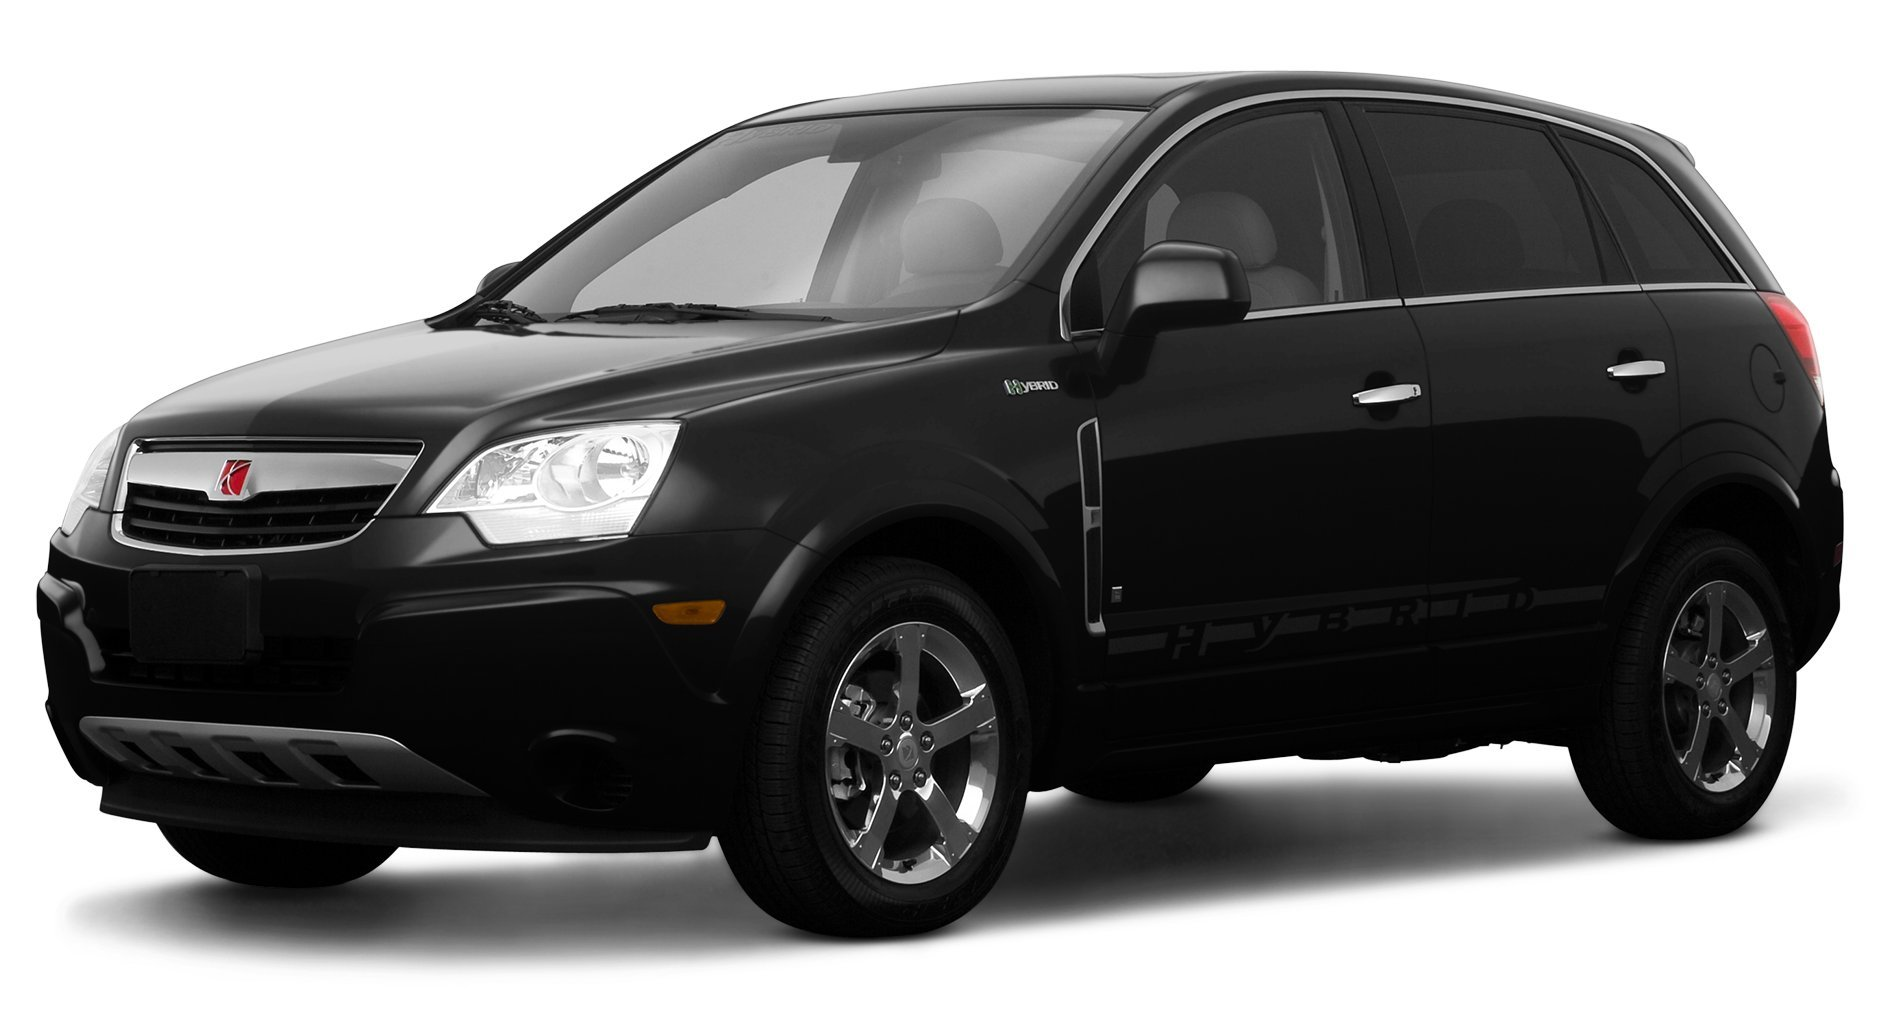 2009 saturn vue reviews images and specs. Black Bedroom Furniture Sets. Home Design Ideas